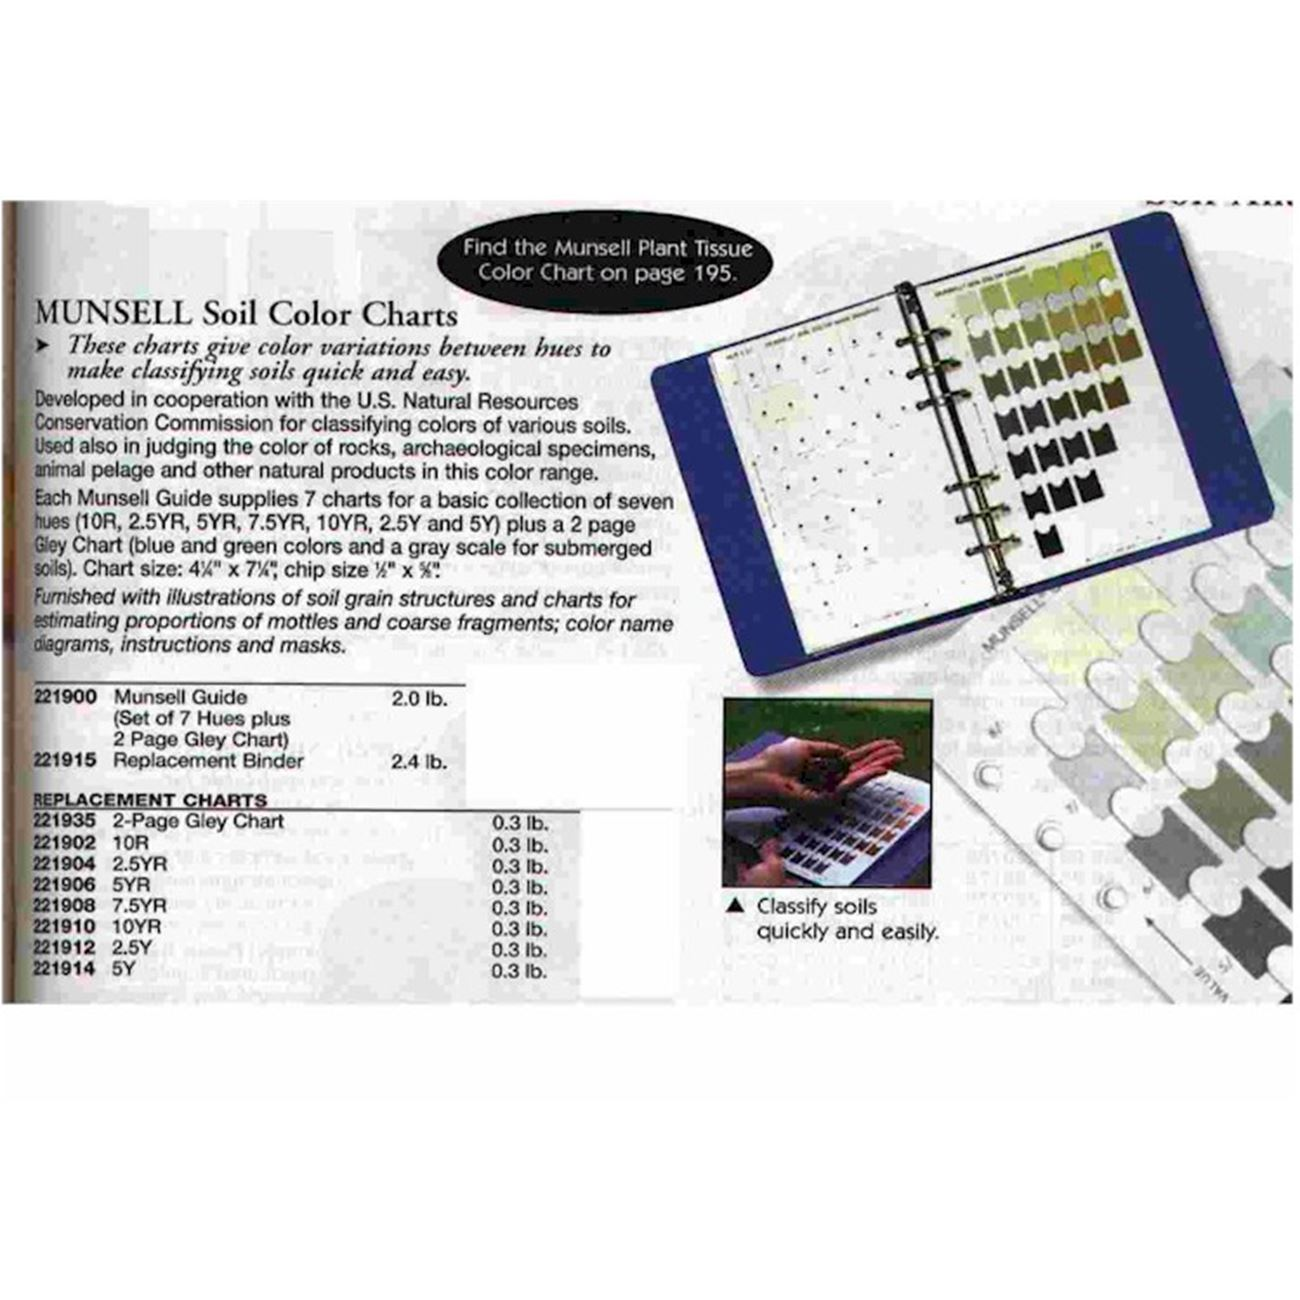 Soil color chart munsell 2009 edititon color index munsell for soil color chart munsell 2009 edititon color index munsell for soil plant analytika nvjuhfo Gallery